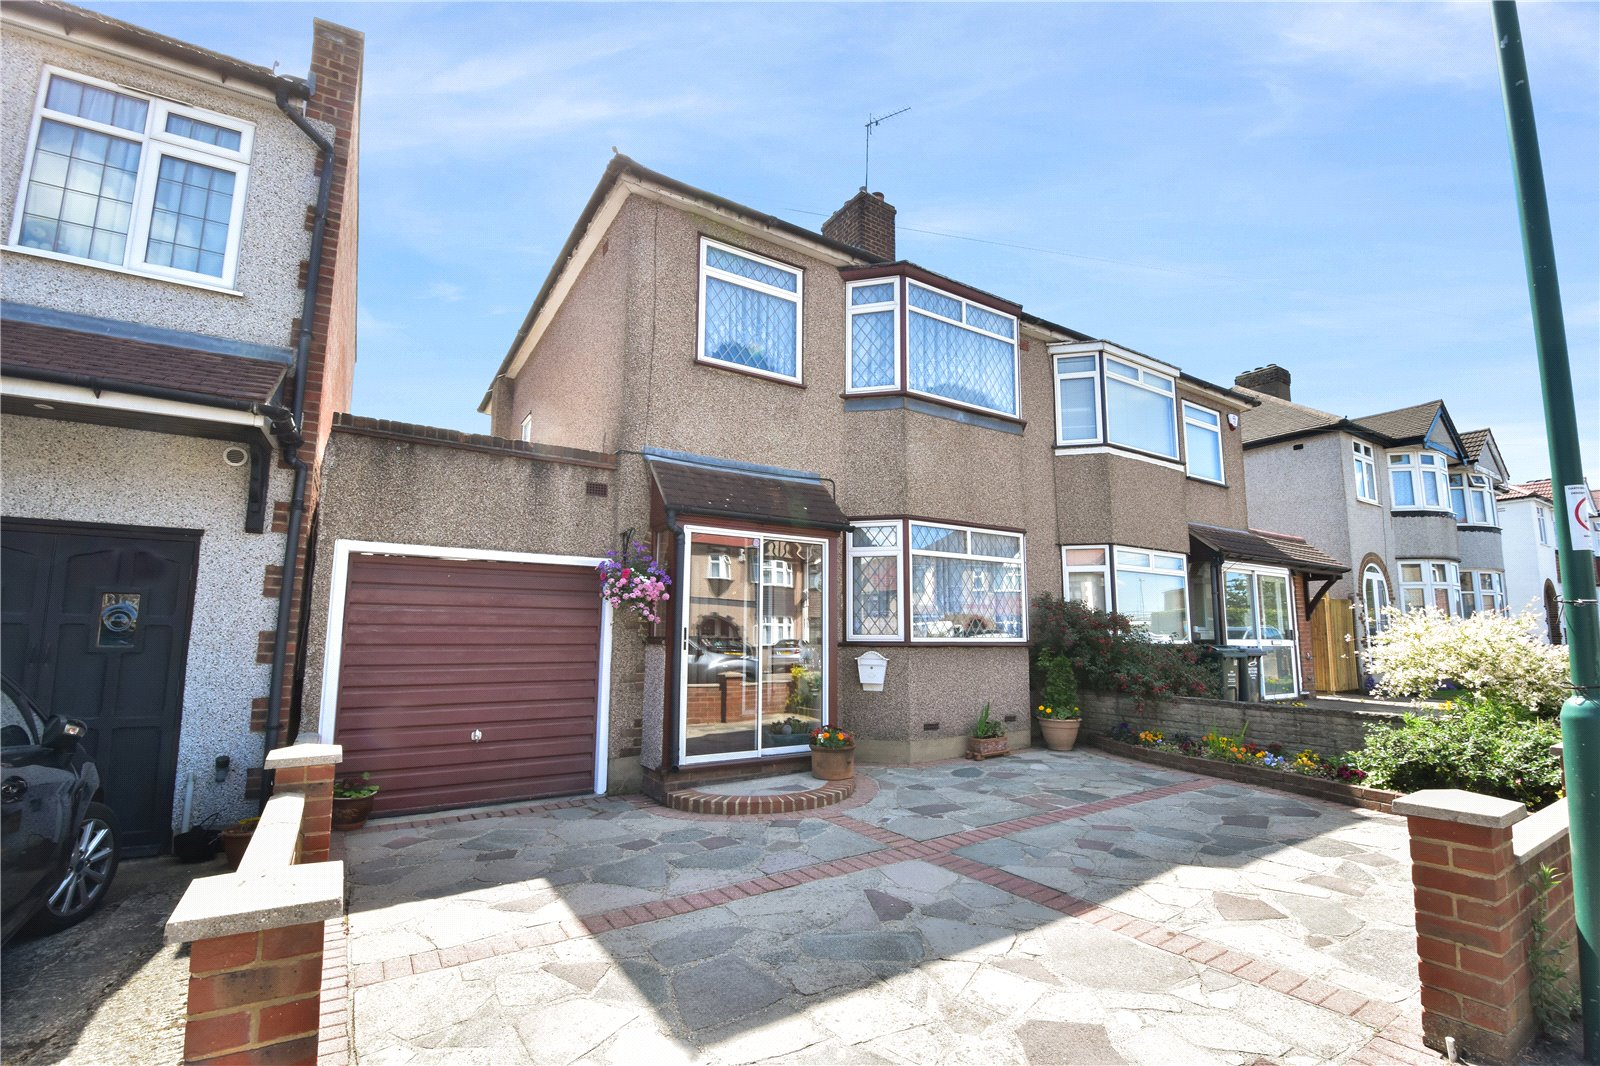 Wentworth Drive, West Dartford, Kent, DA1